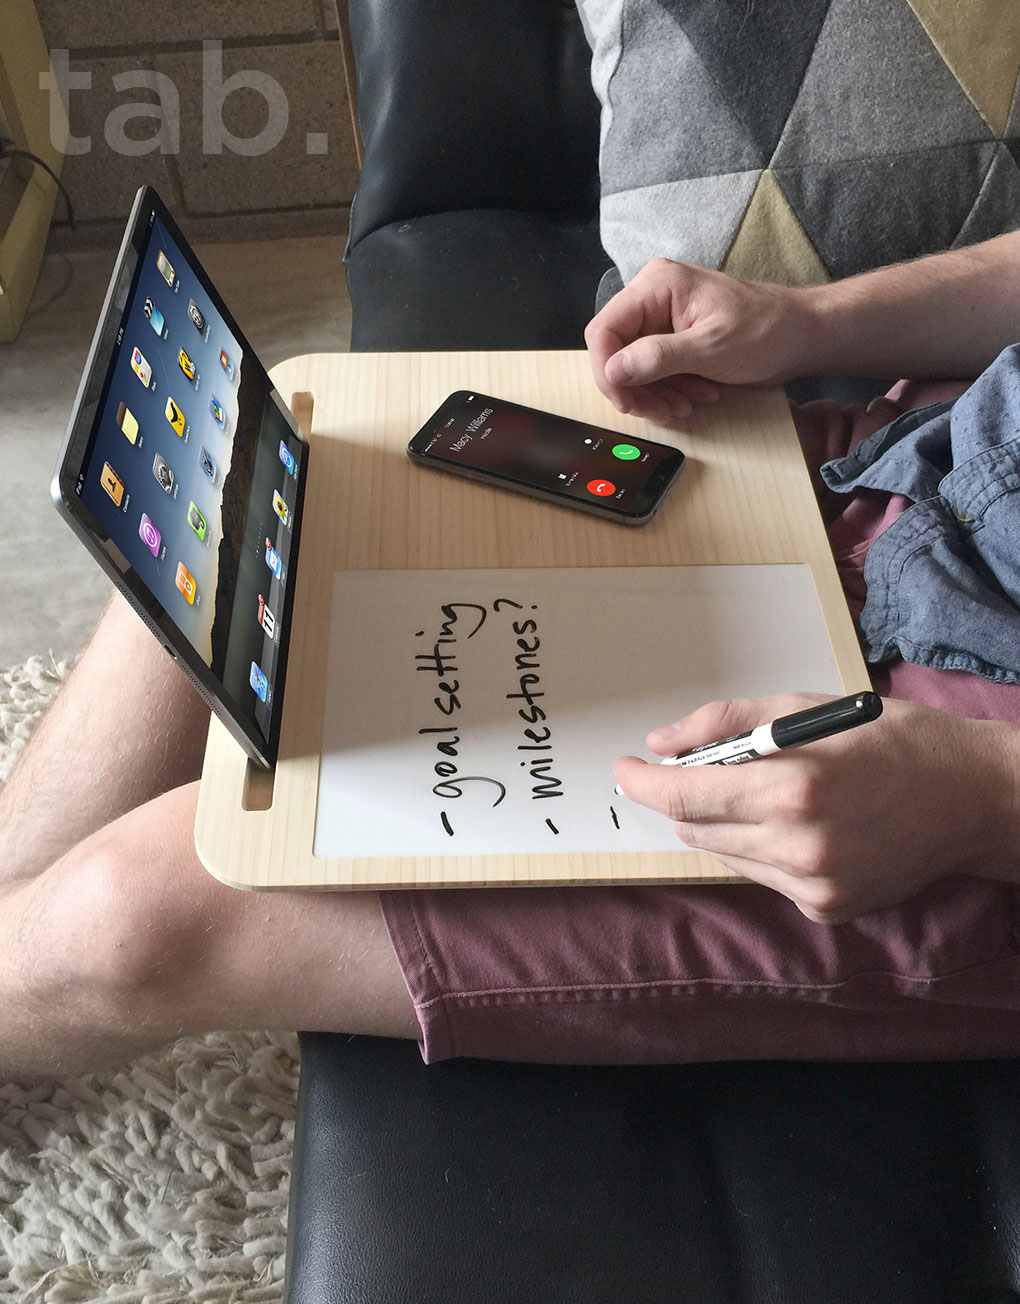 Tab LapDesk Has Writing Surface and Holds Devices